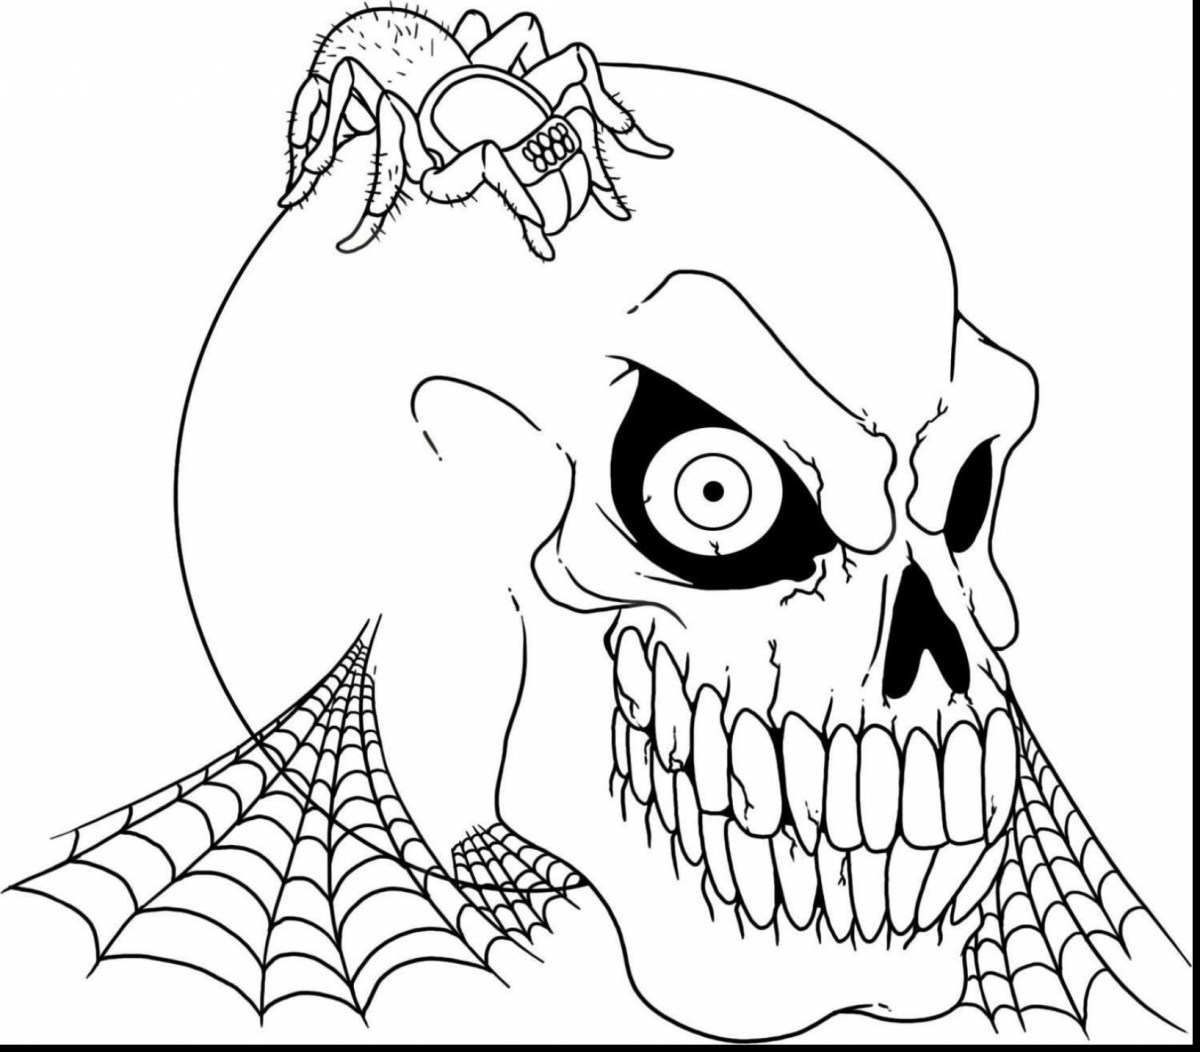 Halloween Coloring Sheets | Printable Halloween Coloring Pages ... | 1052x1200